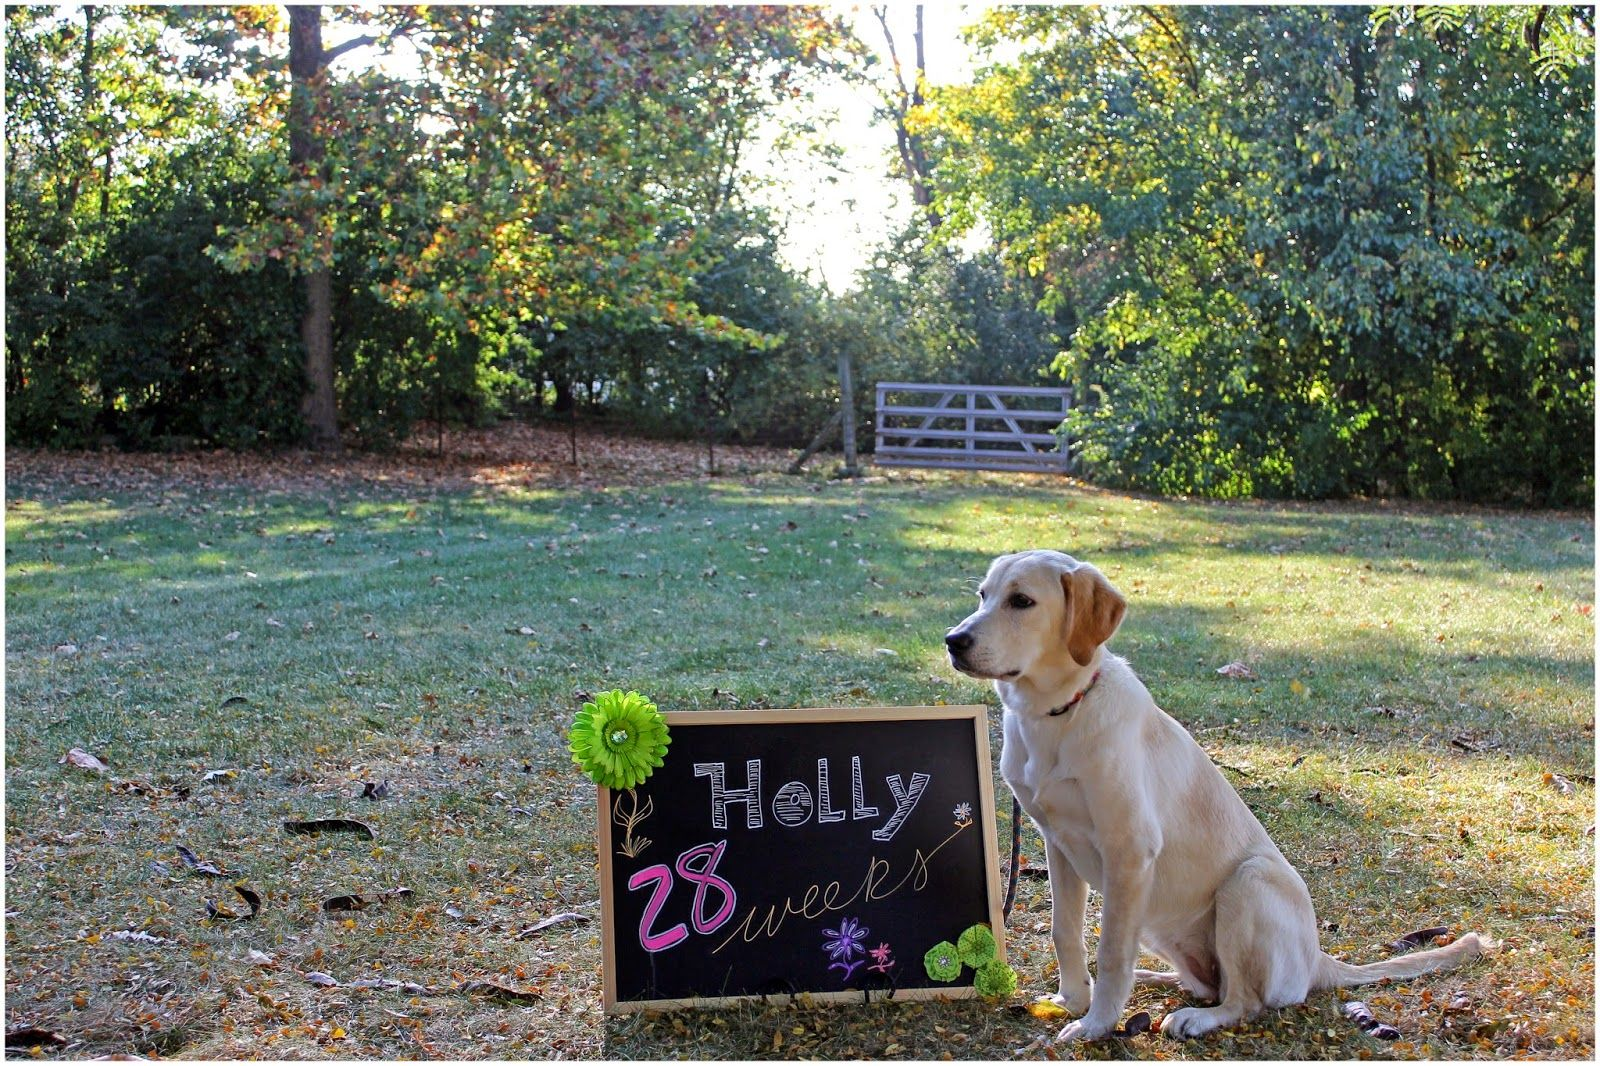 Holly is a Canine Companions for Independence puppy being